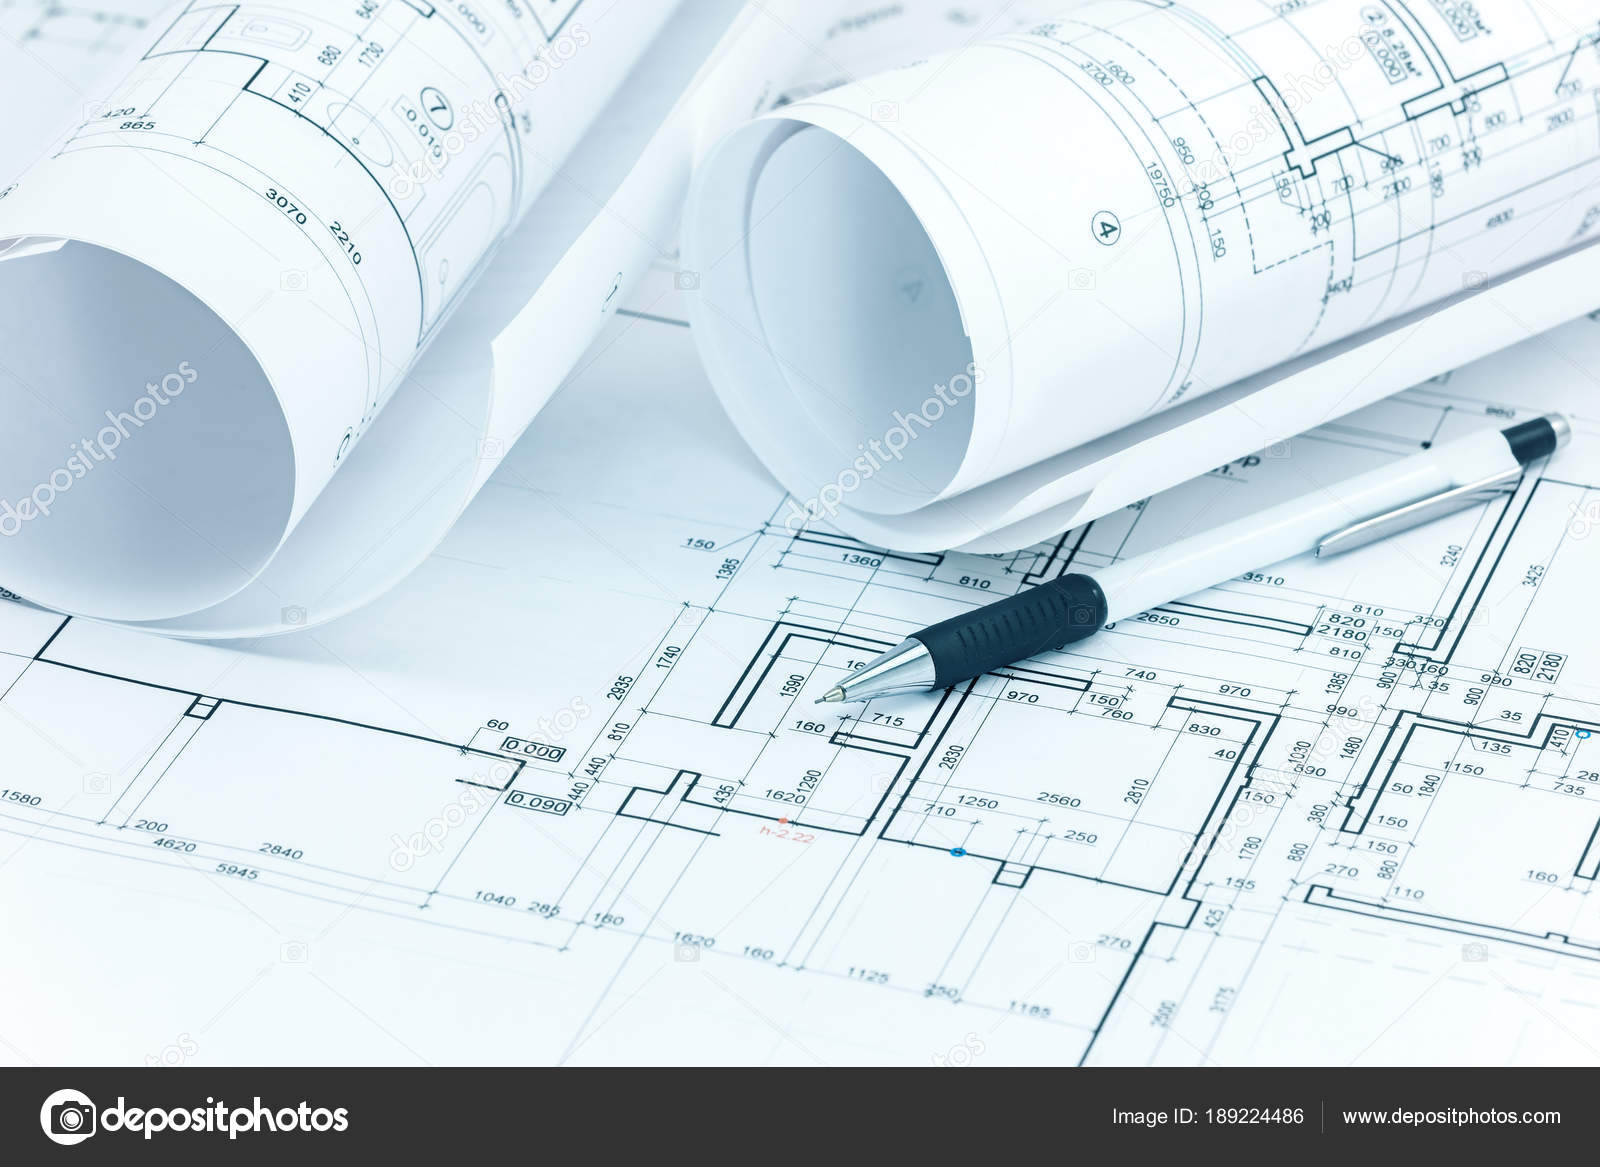 Architectural plans blueprint rolls and pencil on architect desk architectural plans blueprint rolls and pencil on architect desk stock photo malvernweather Gallery